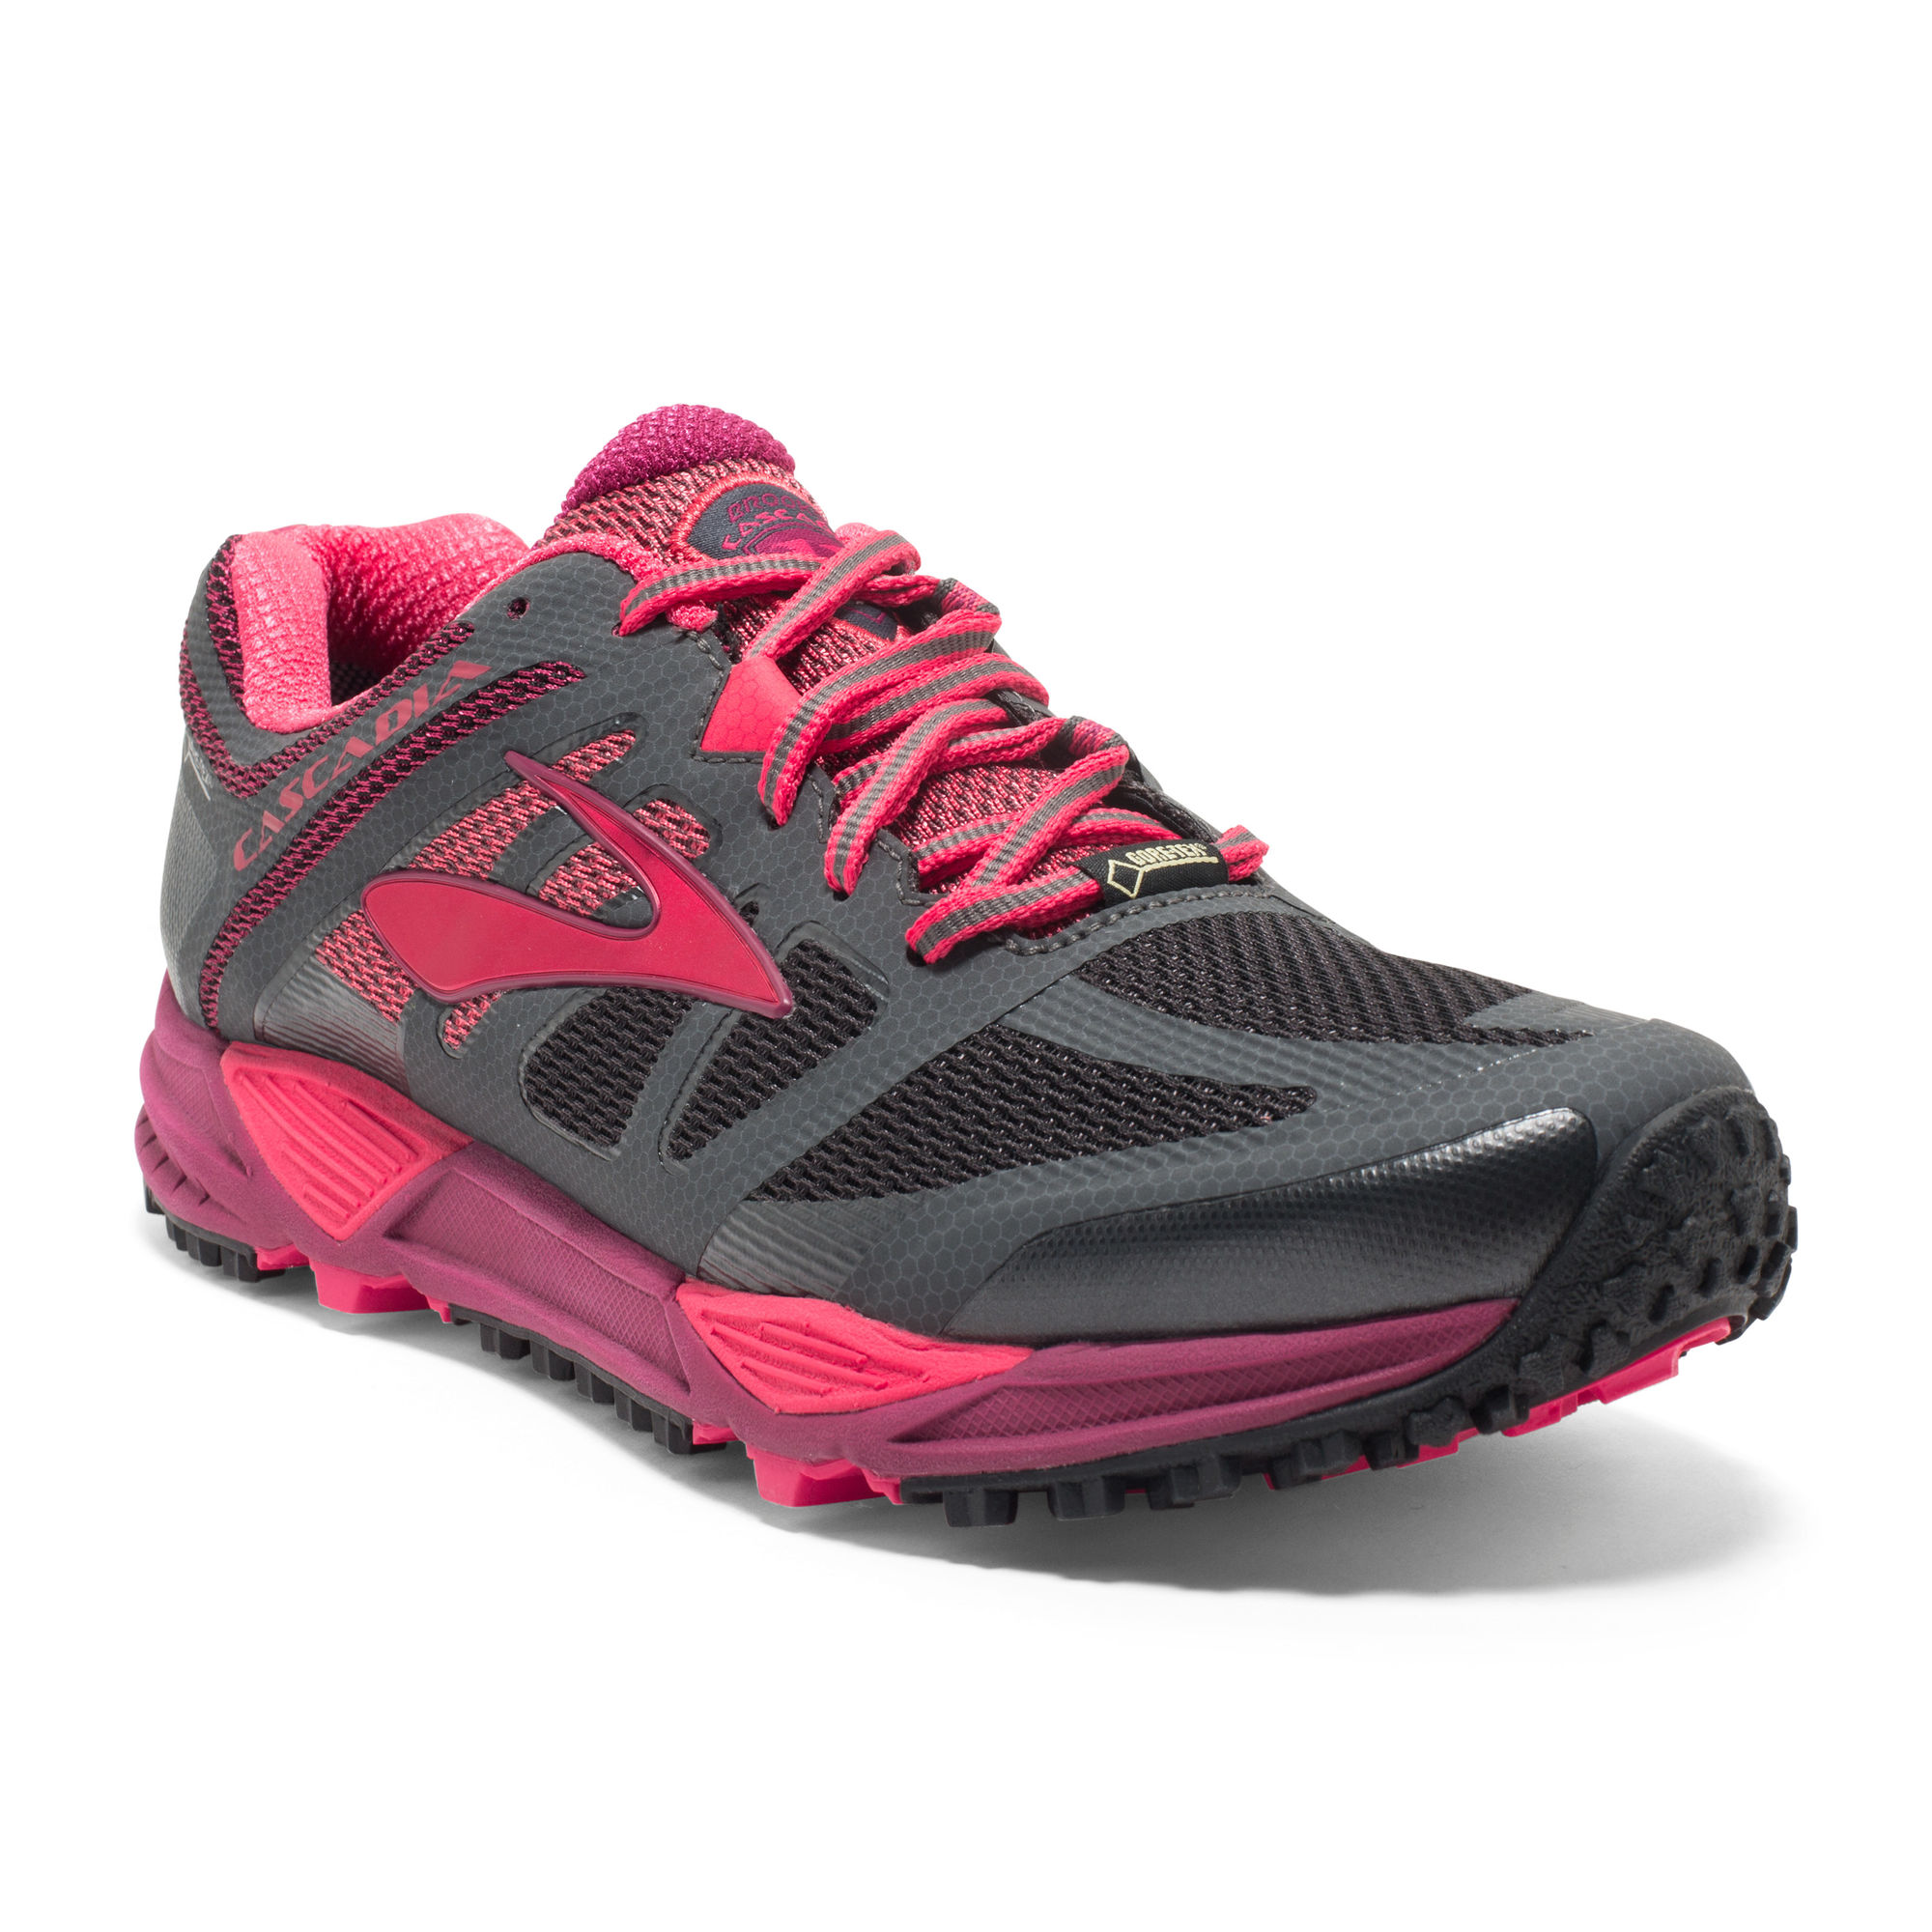 Brooks Lady Cascadia 11 GTX in Grau Pink